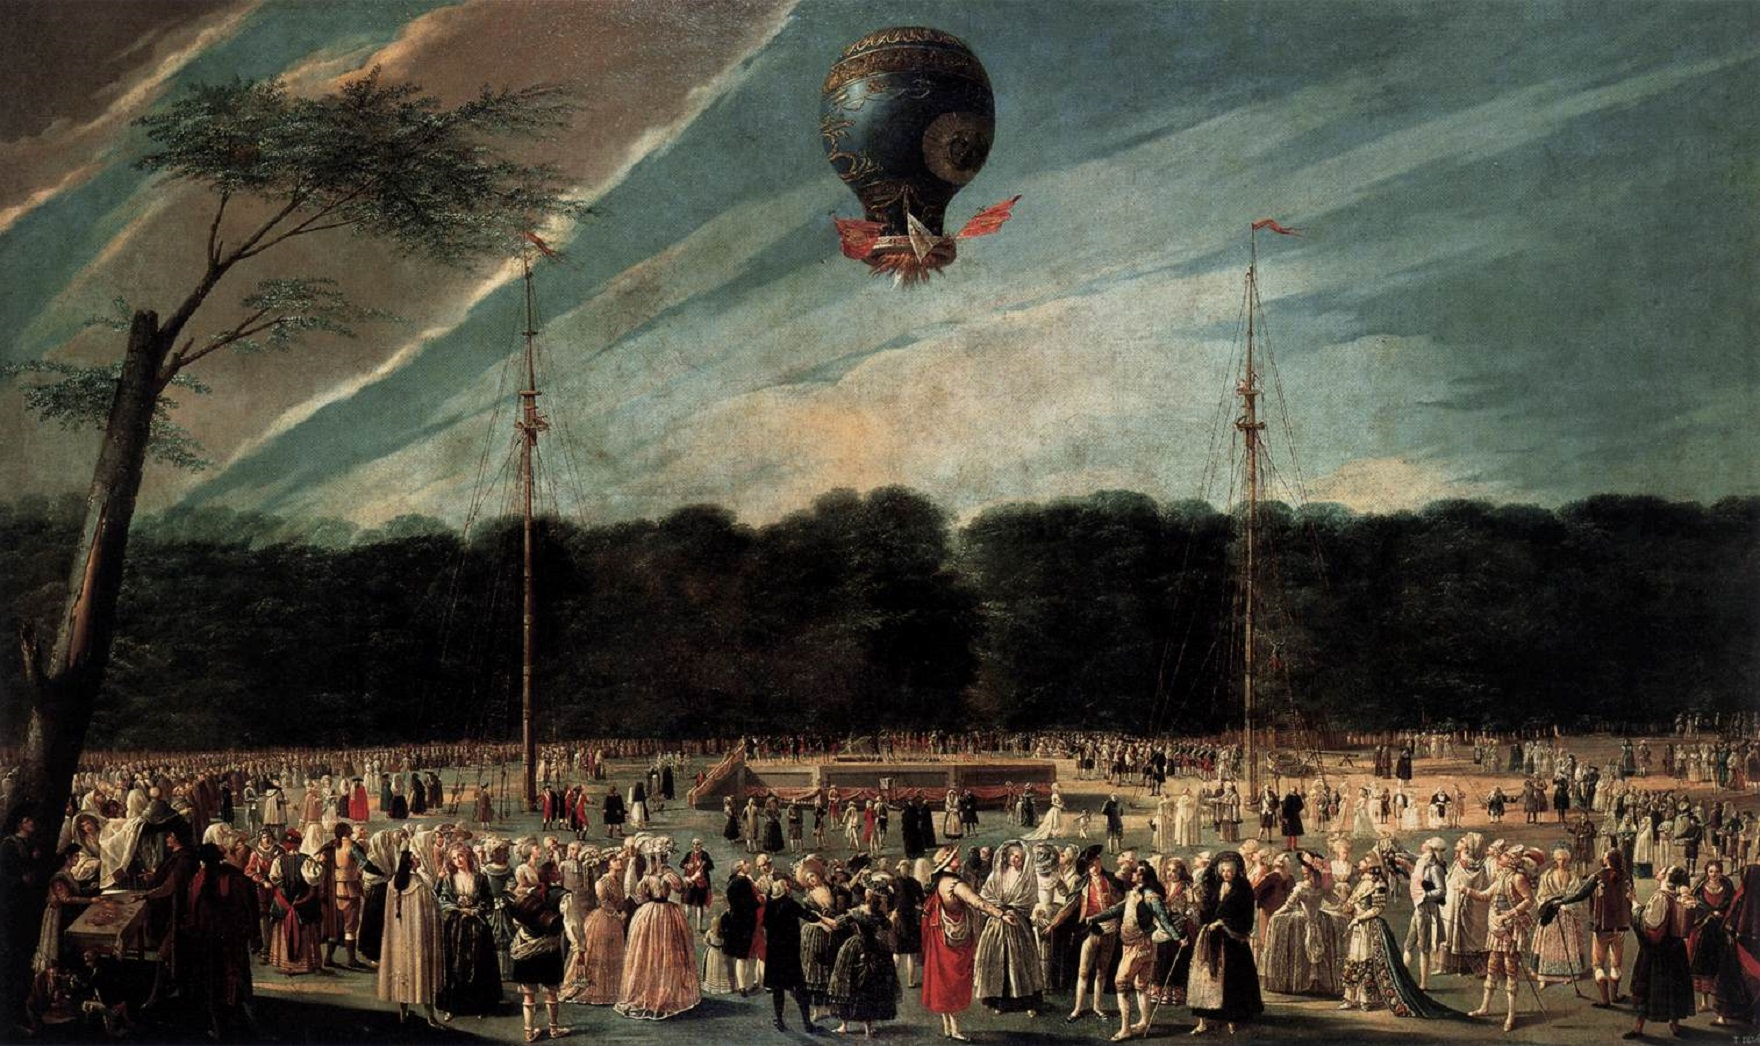 Antonio_Carnicero_Y_Mancio_-_Ascent_of_the_Monsieur_Bouclé's_Montgolfier_Balloon_in_the_Gardens_of_Aranjuez_-_WGA04273